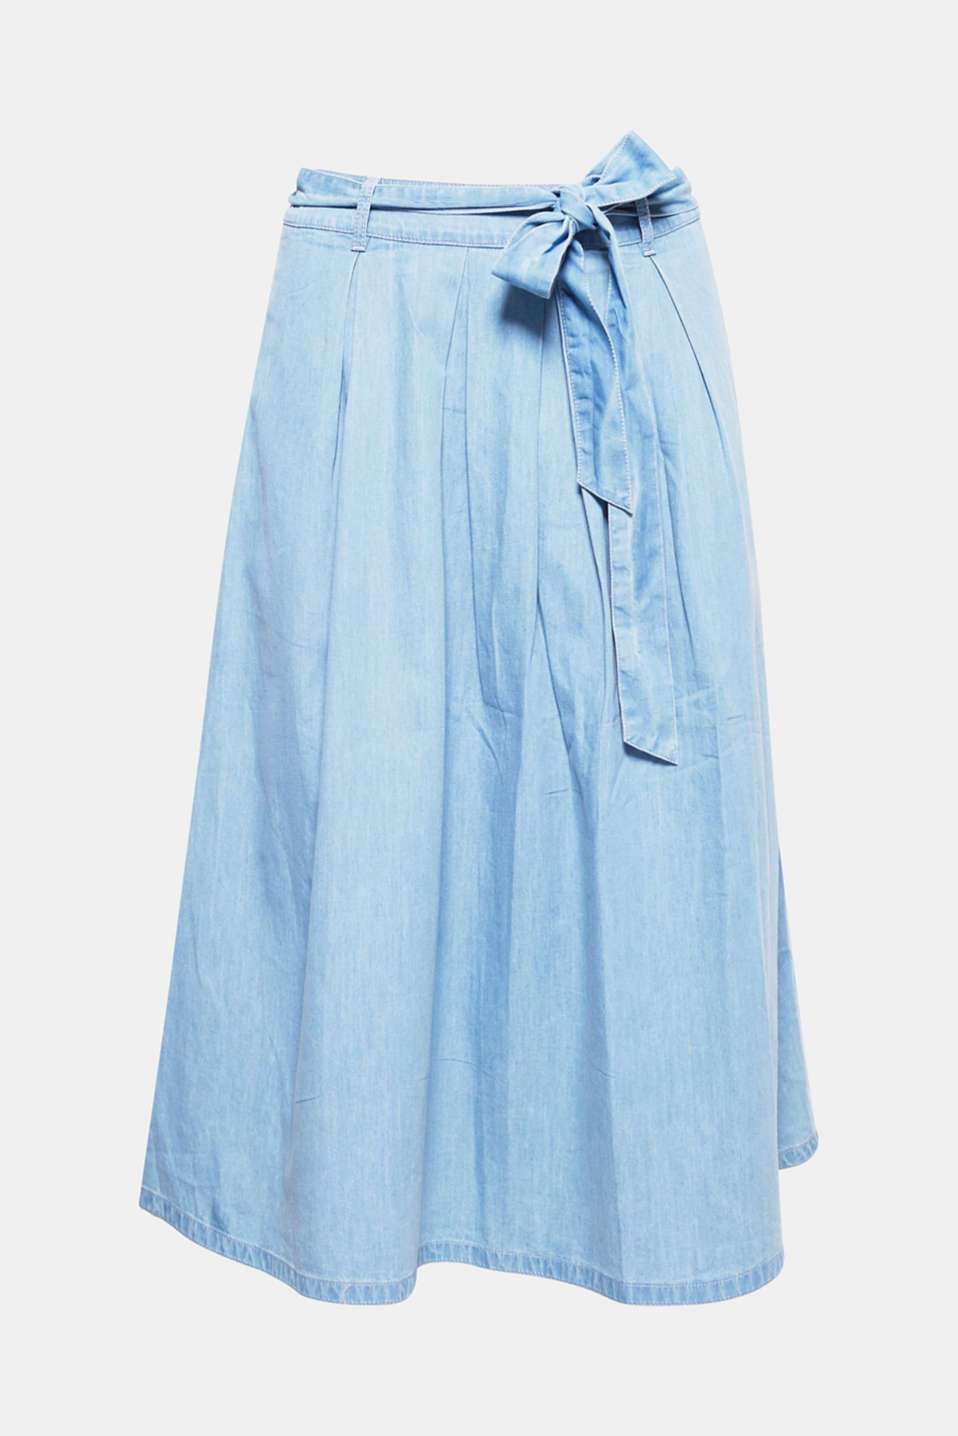 Fresh, swirling summer style! With this midi skirt in flowing denim-effect cotton you will always look airy, light and super stylish when you are out and about.